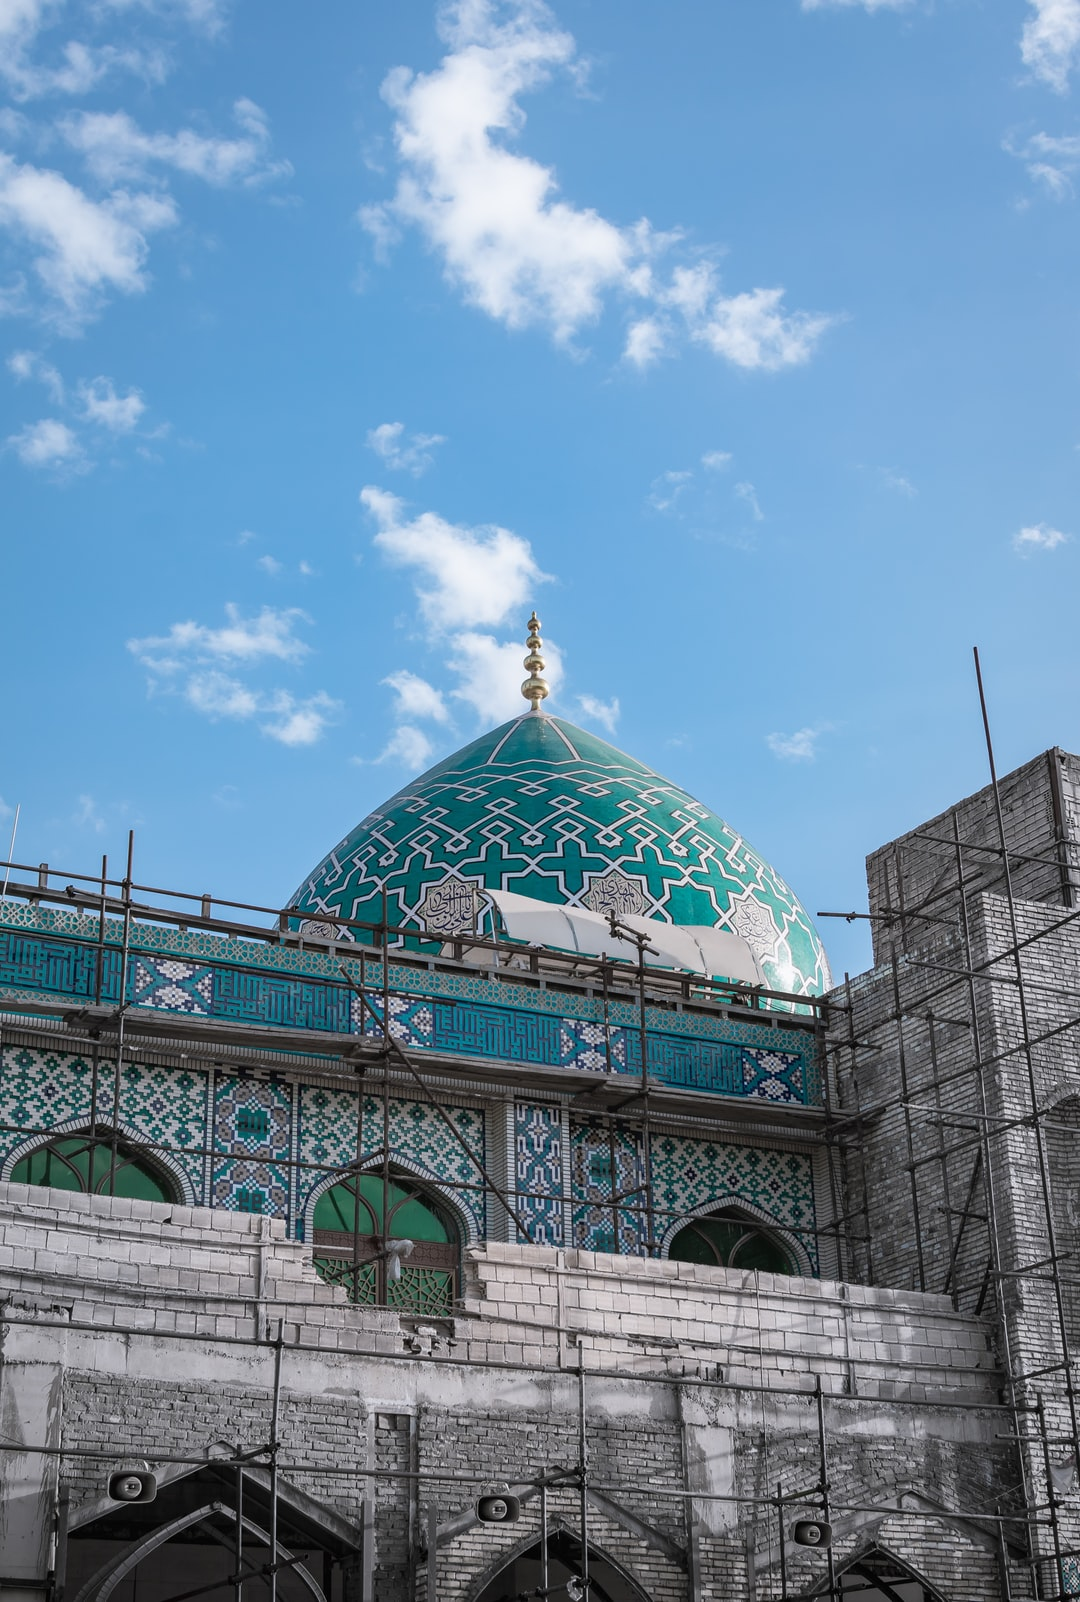 The dome of Ali Ibn Mahziar shrine, with turquoise tile work, which is characteristic of Islamic and Persian architecture.